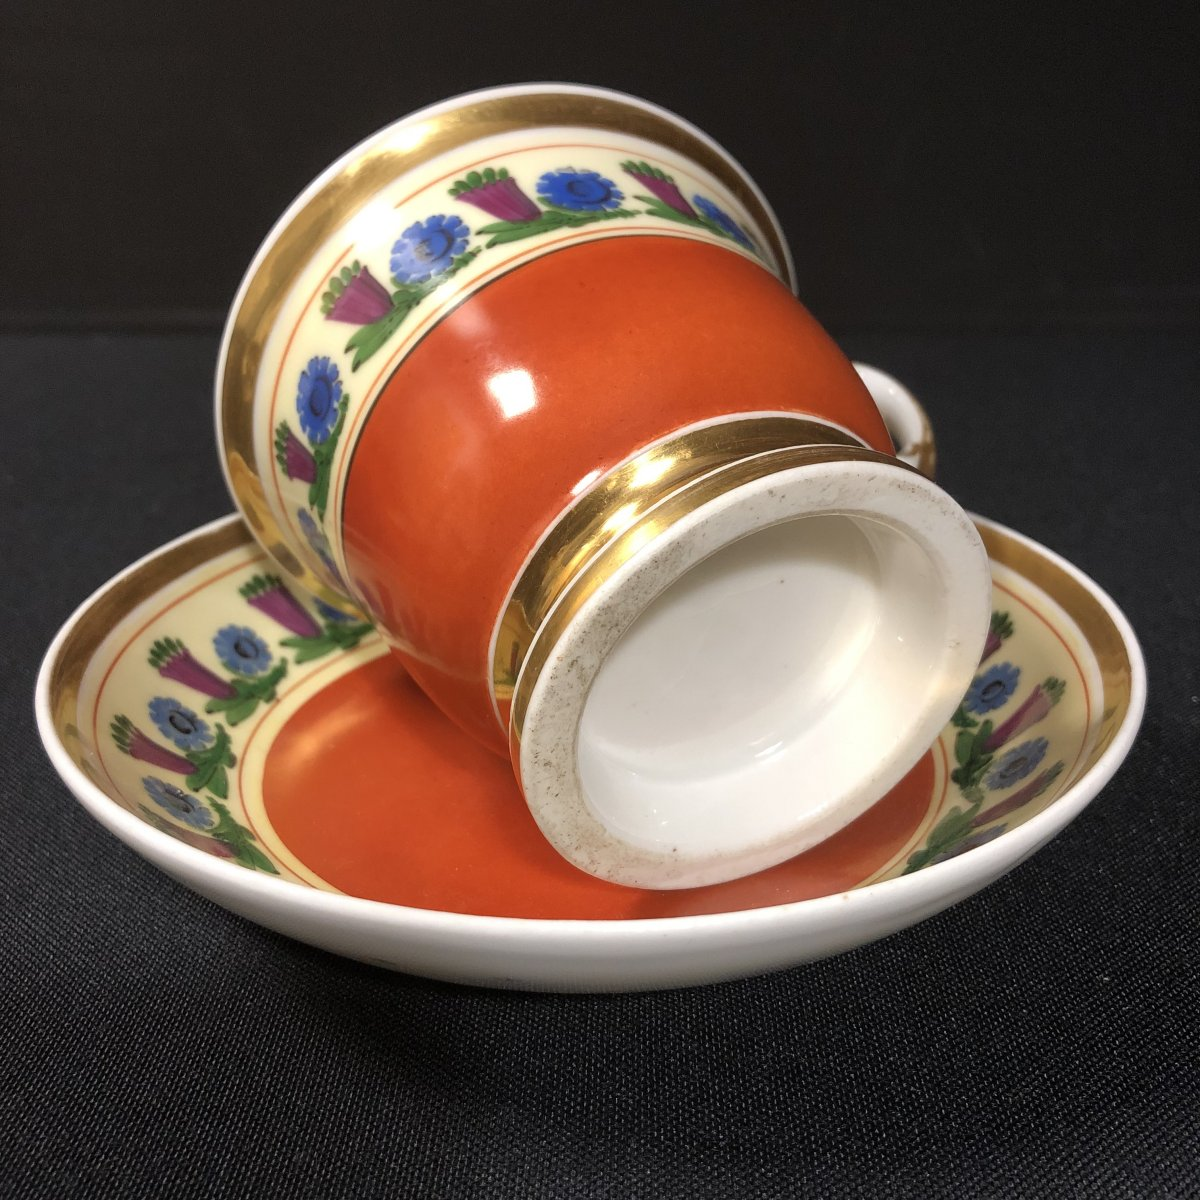 Chocolate Cup And Saucer In Paris Porcelain-photo-4